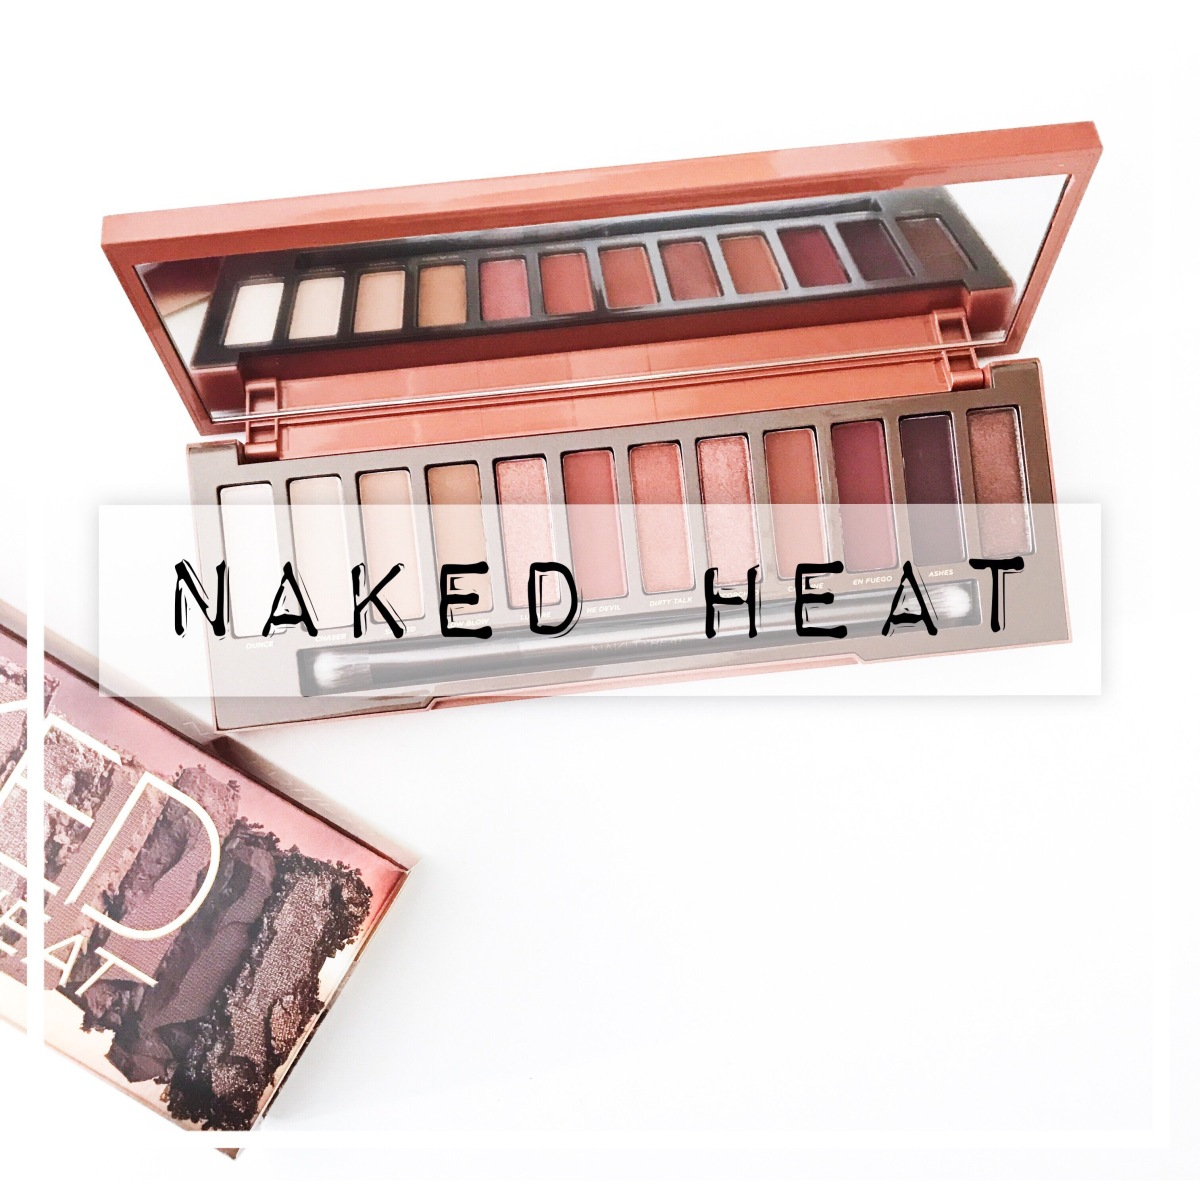 [Make up] La Naked Heat d'Urban Decay